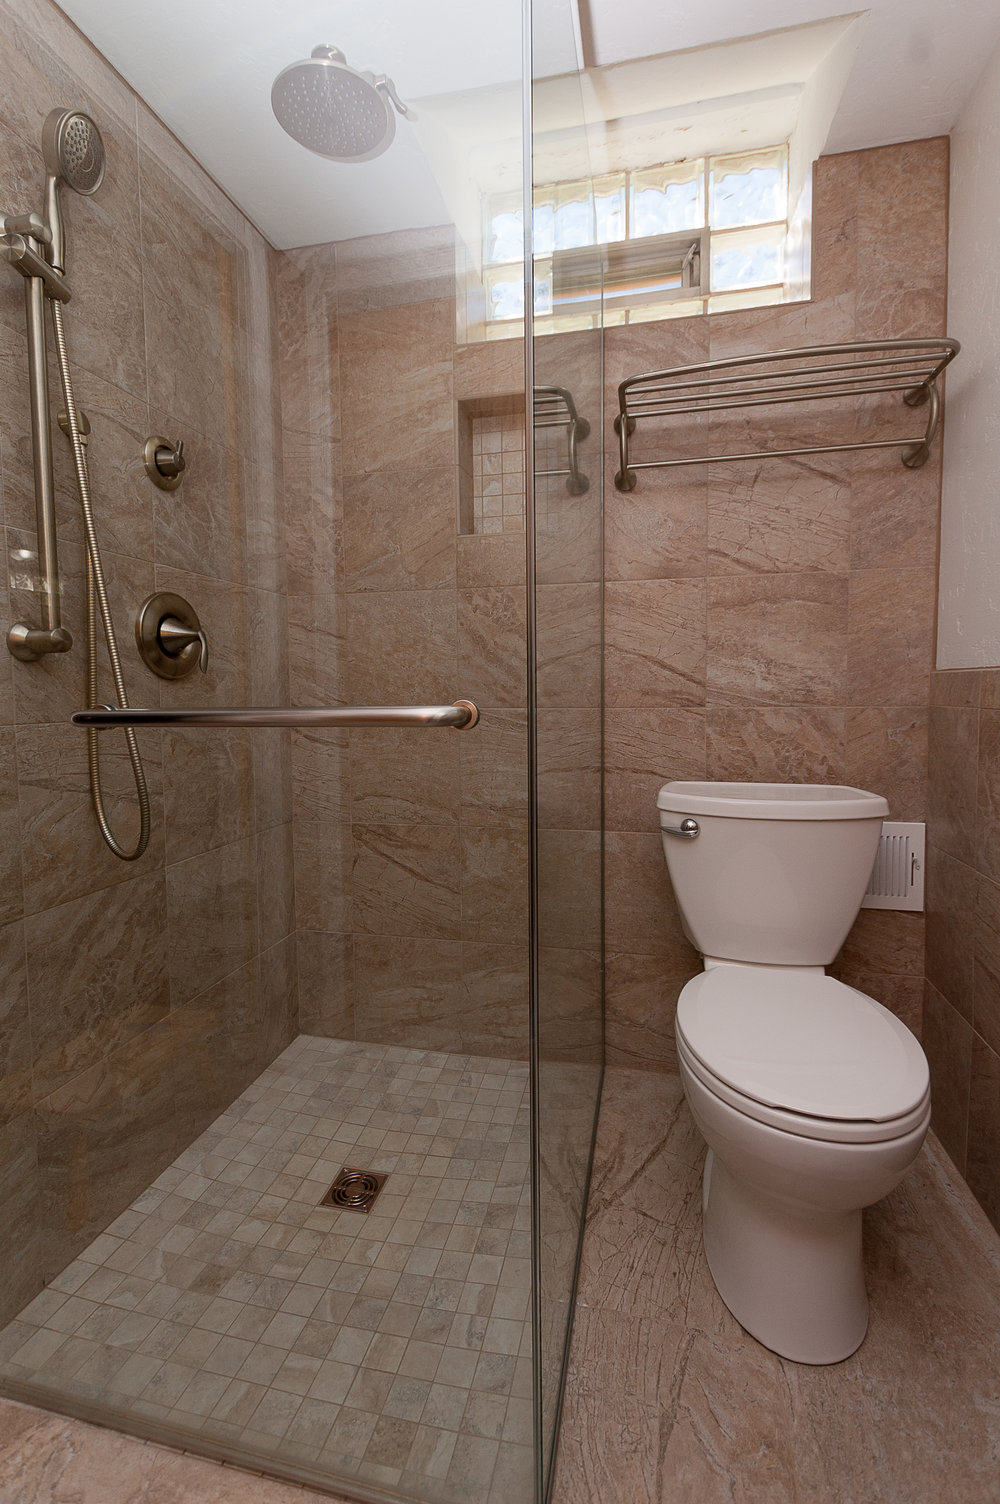 Shower and toilet - with new lense.jpg